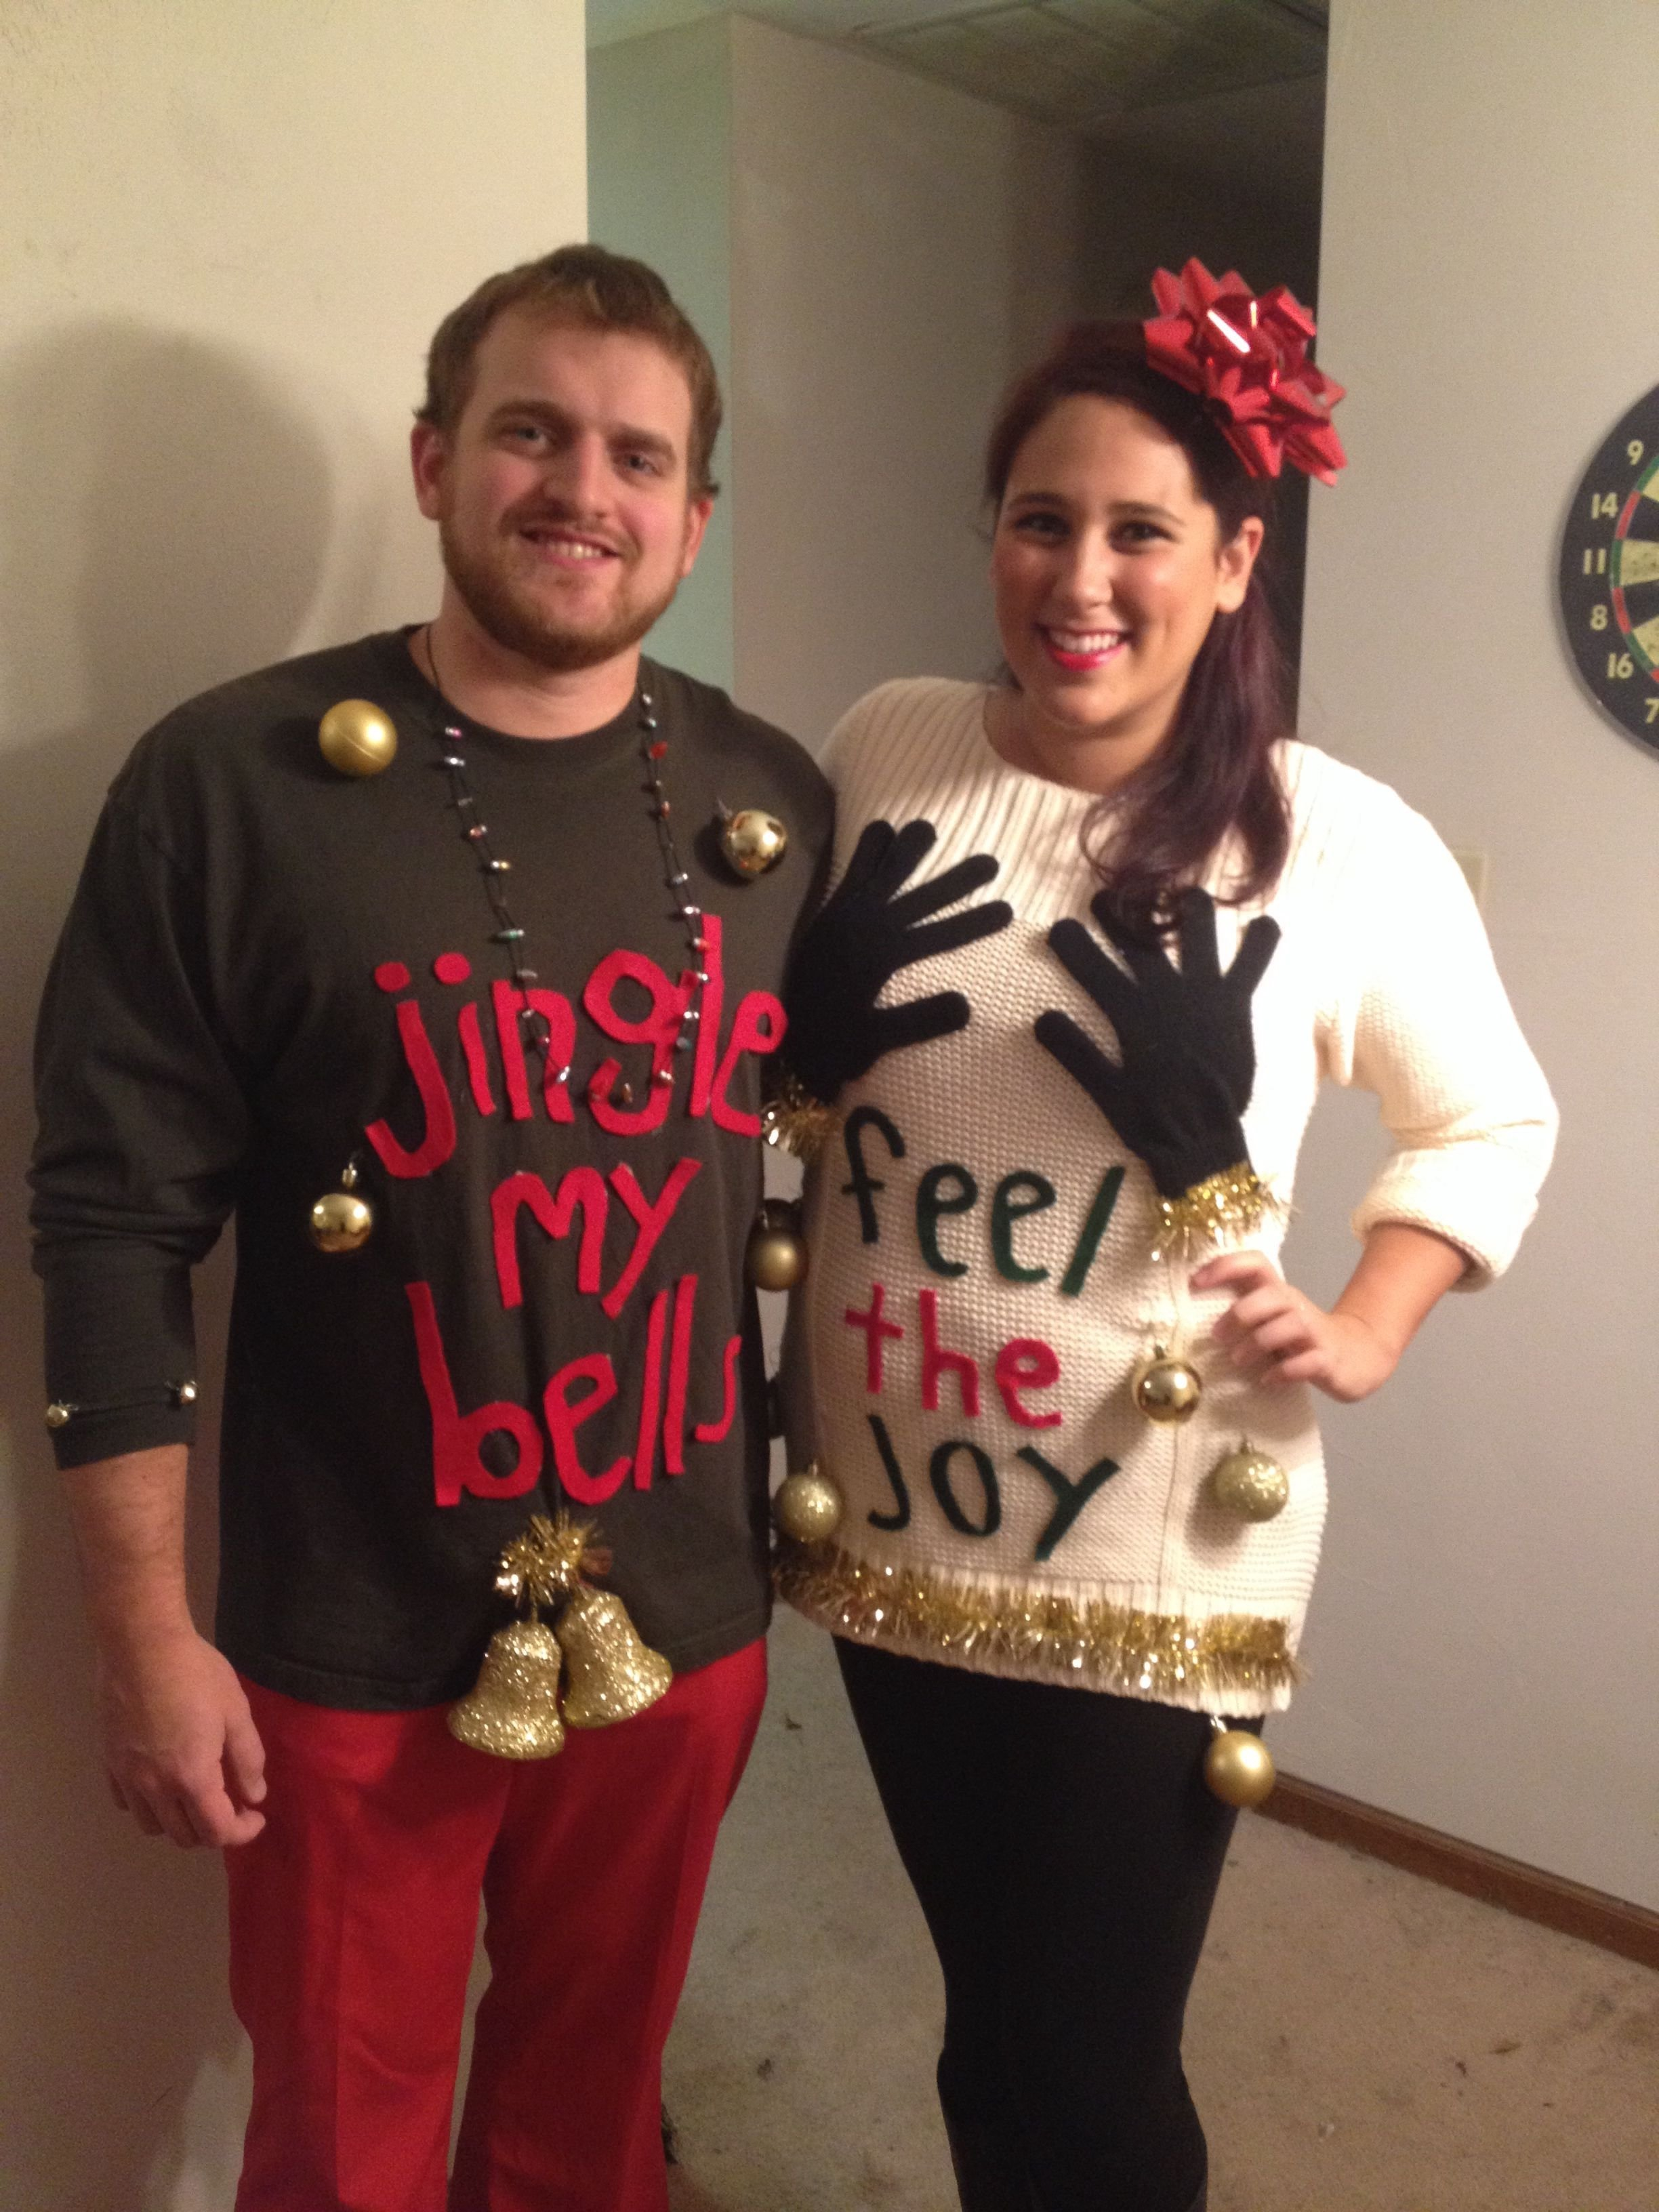 10 cute tacky christmas sweater ideas for couples pindenise schmitz on ugly sweater ideas pinterest diy - Homemade Tacky Christmas Sweaters